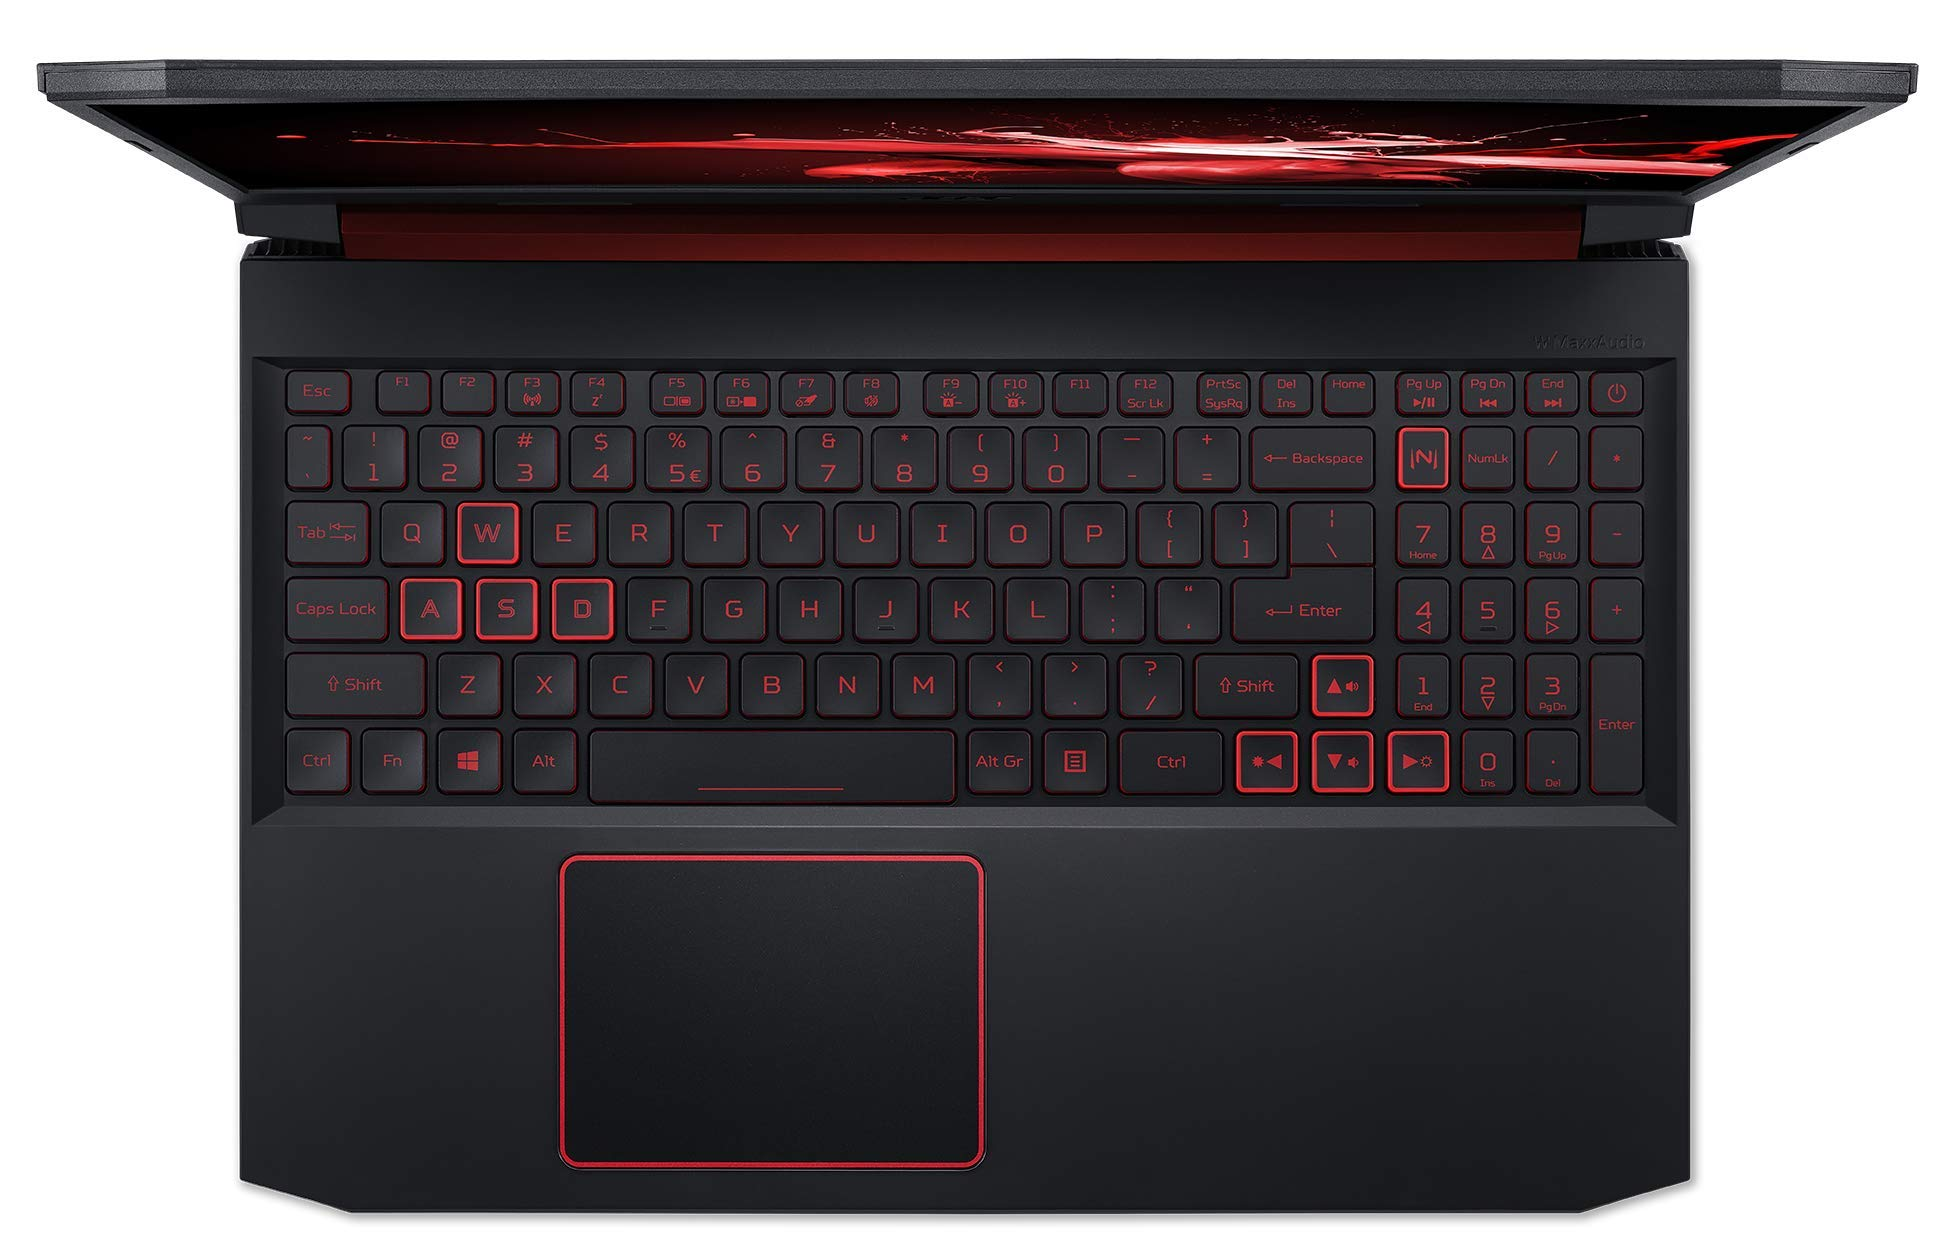 """Acer Nitro 5 AN515 Gaming Notebook 10th Gen Intel Core i5-10300H Quad Core Upto 4.50GHz/8GB DDR4 RAM/1TB SSD Storage/4GB NVIDIAGeForce GTX 1650/15.6"""" FHD -Win 10 Home-Black + Headset+ Mouse & Pad"""